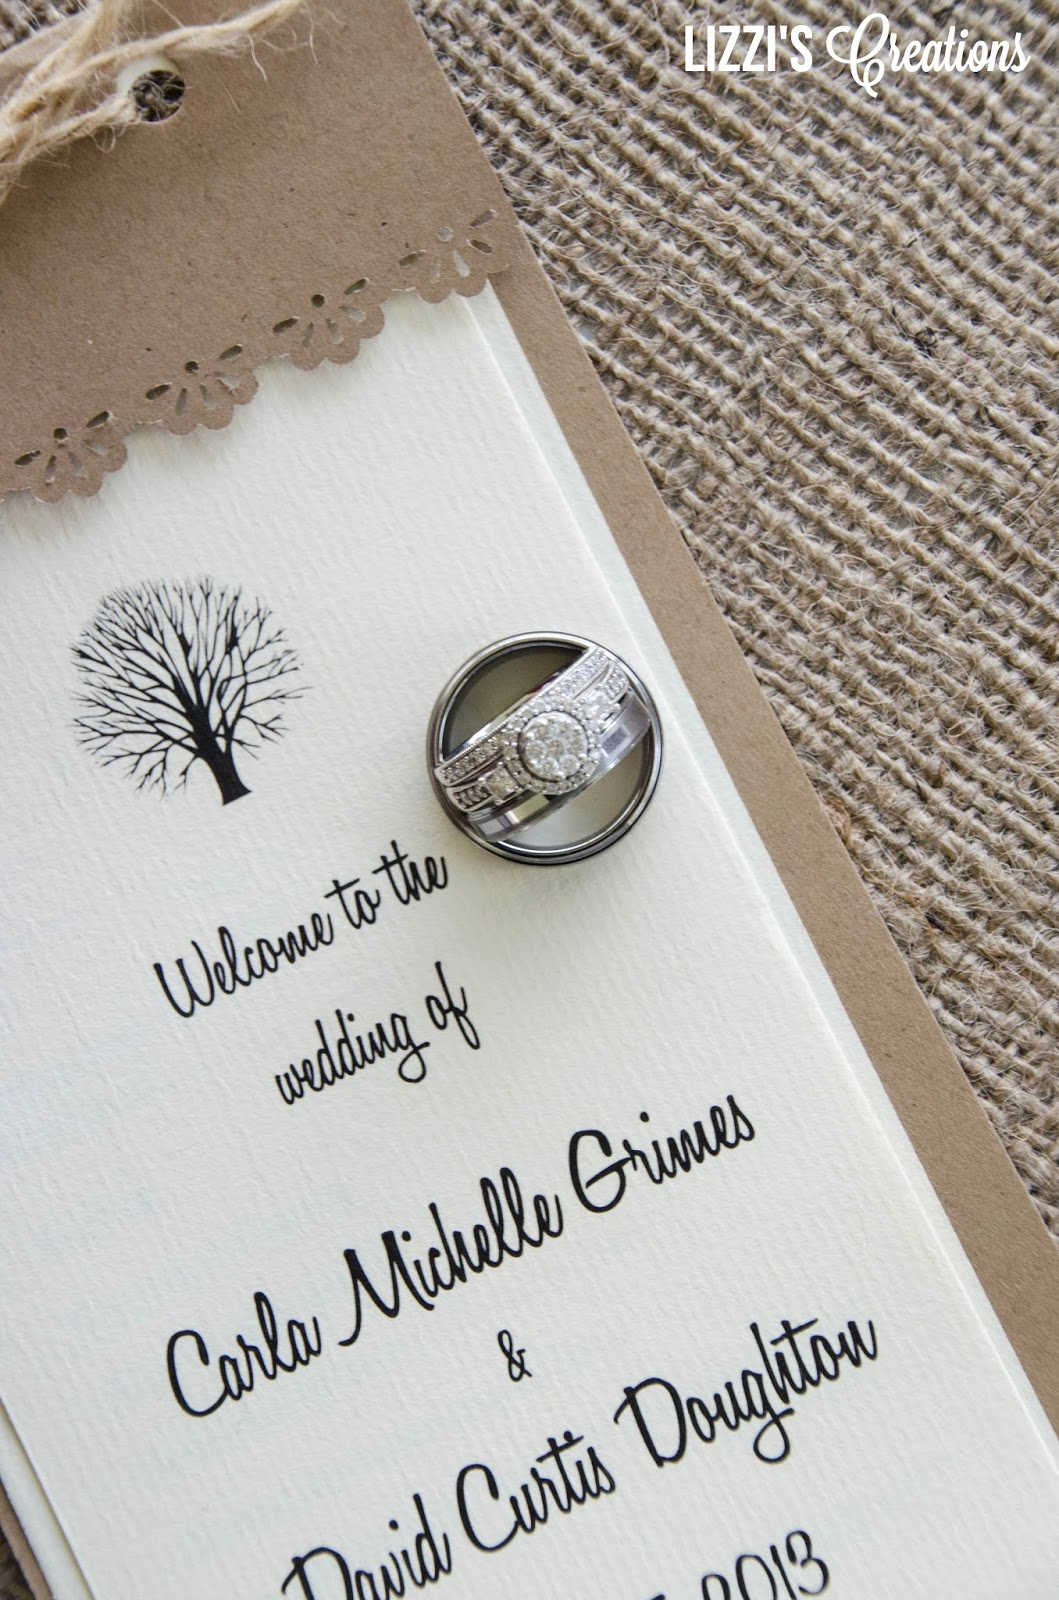 Lizzis creations project wedding invitations and programs thanks for joining me for my project wedding series click below to see other projects from carla and davids wedding monicamarmolfo Choice Image